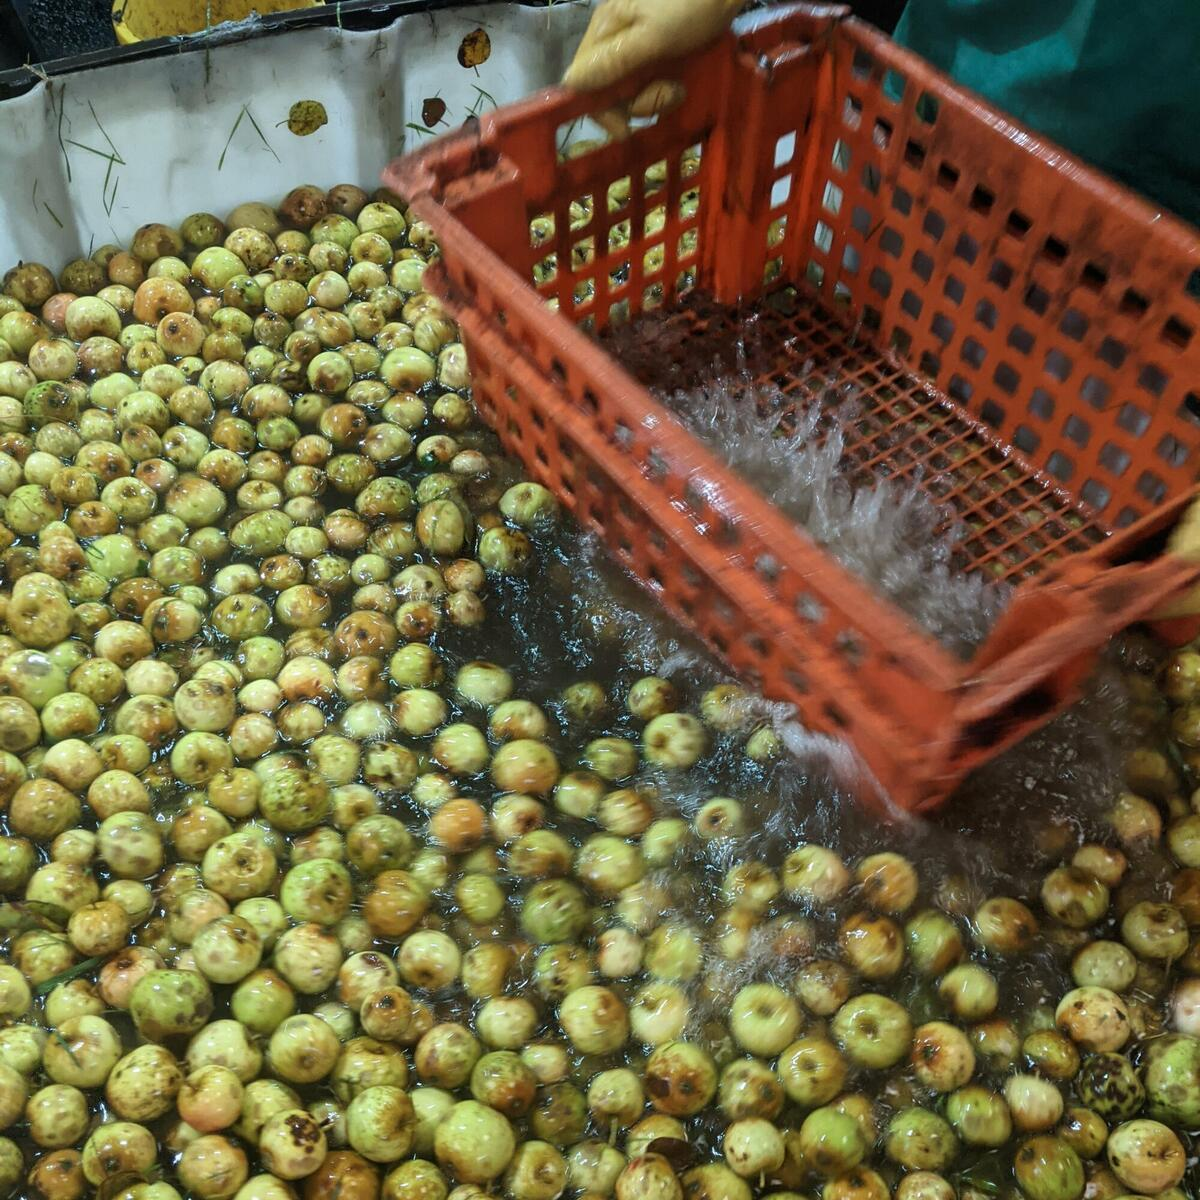 Once the apples or pears come into the cider barn, the first job is to handwash and sort them.